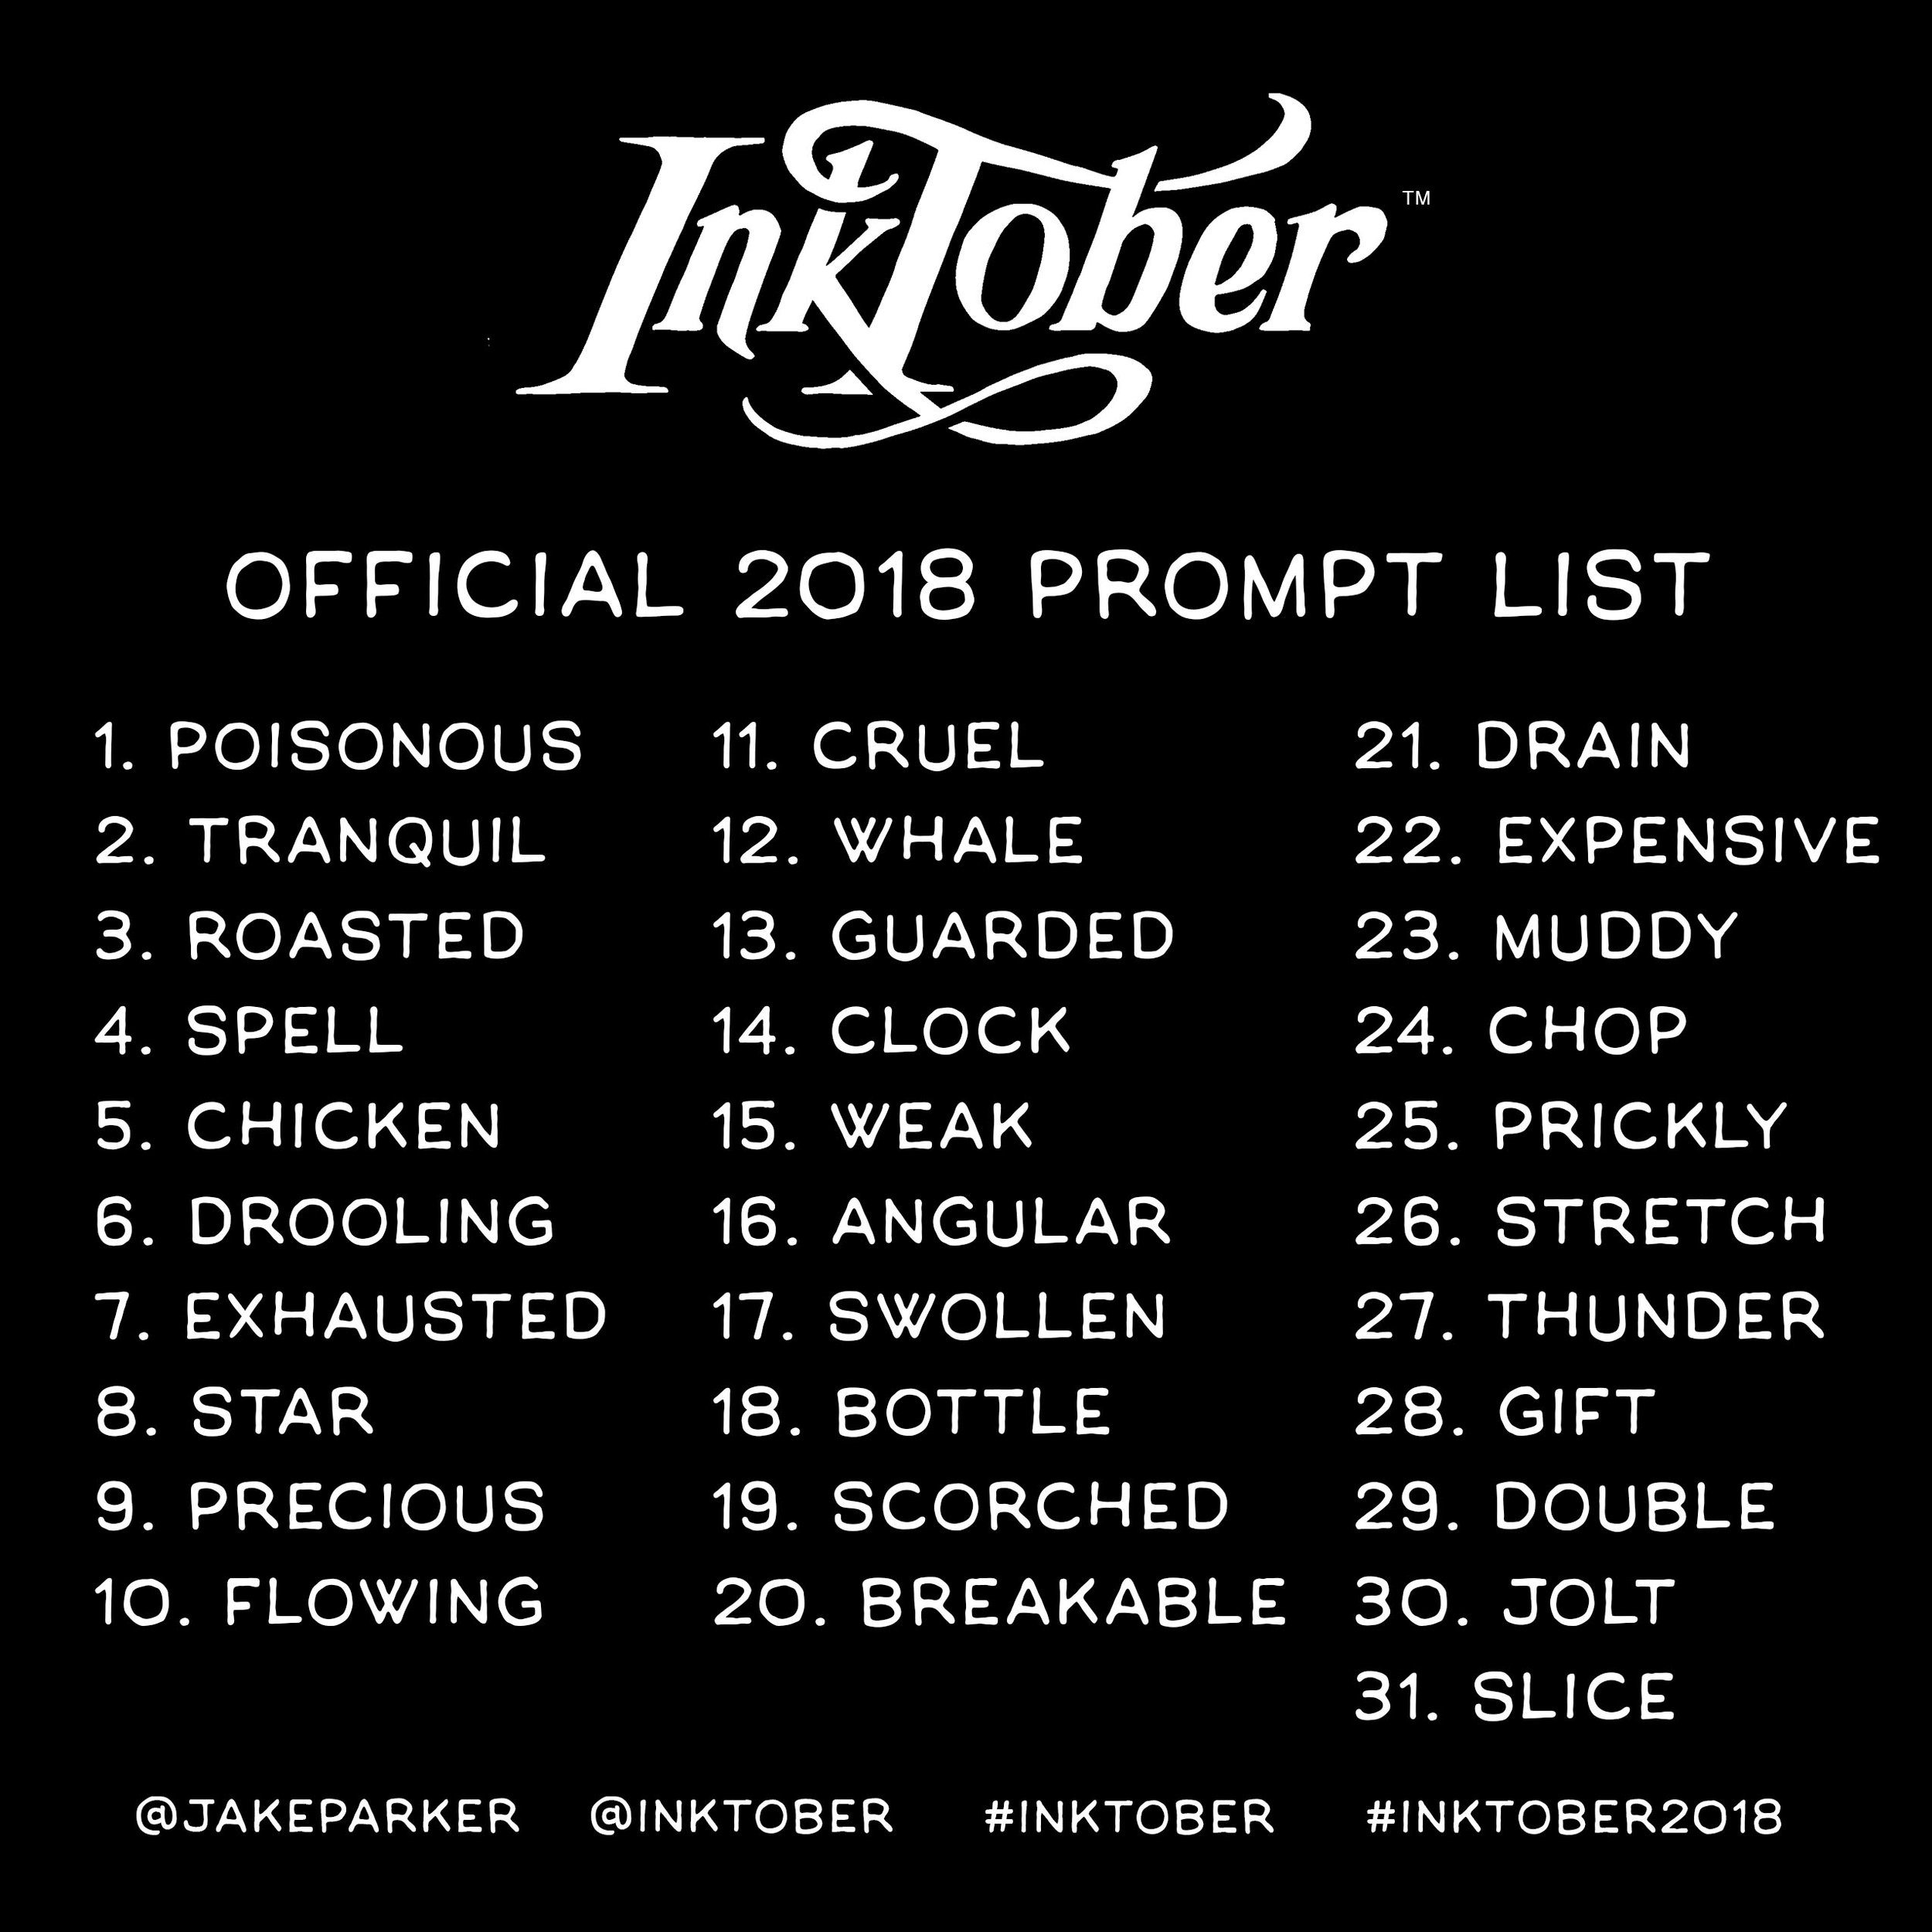 The Official Prompt List - If you aren't sure what to draw, the prompt list is here to help spark creativity. (It's available in other languages too!) But it's totally up to you if you want to use it or not 😄